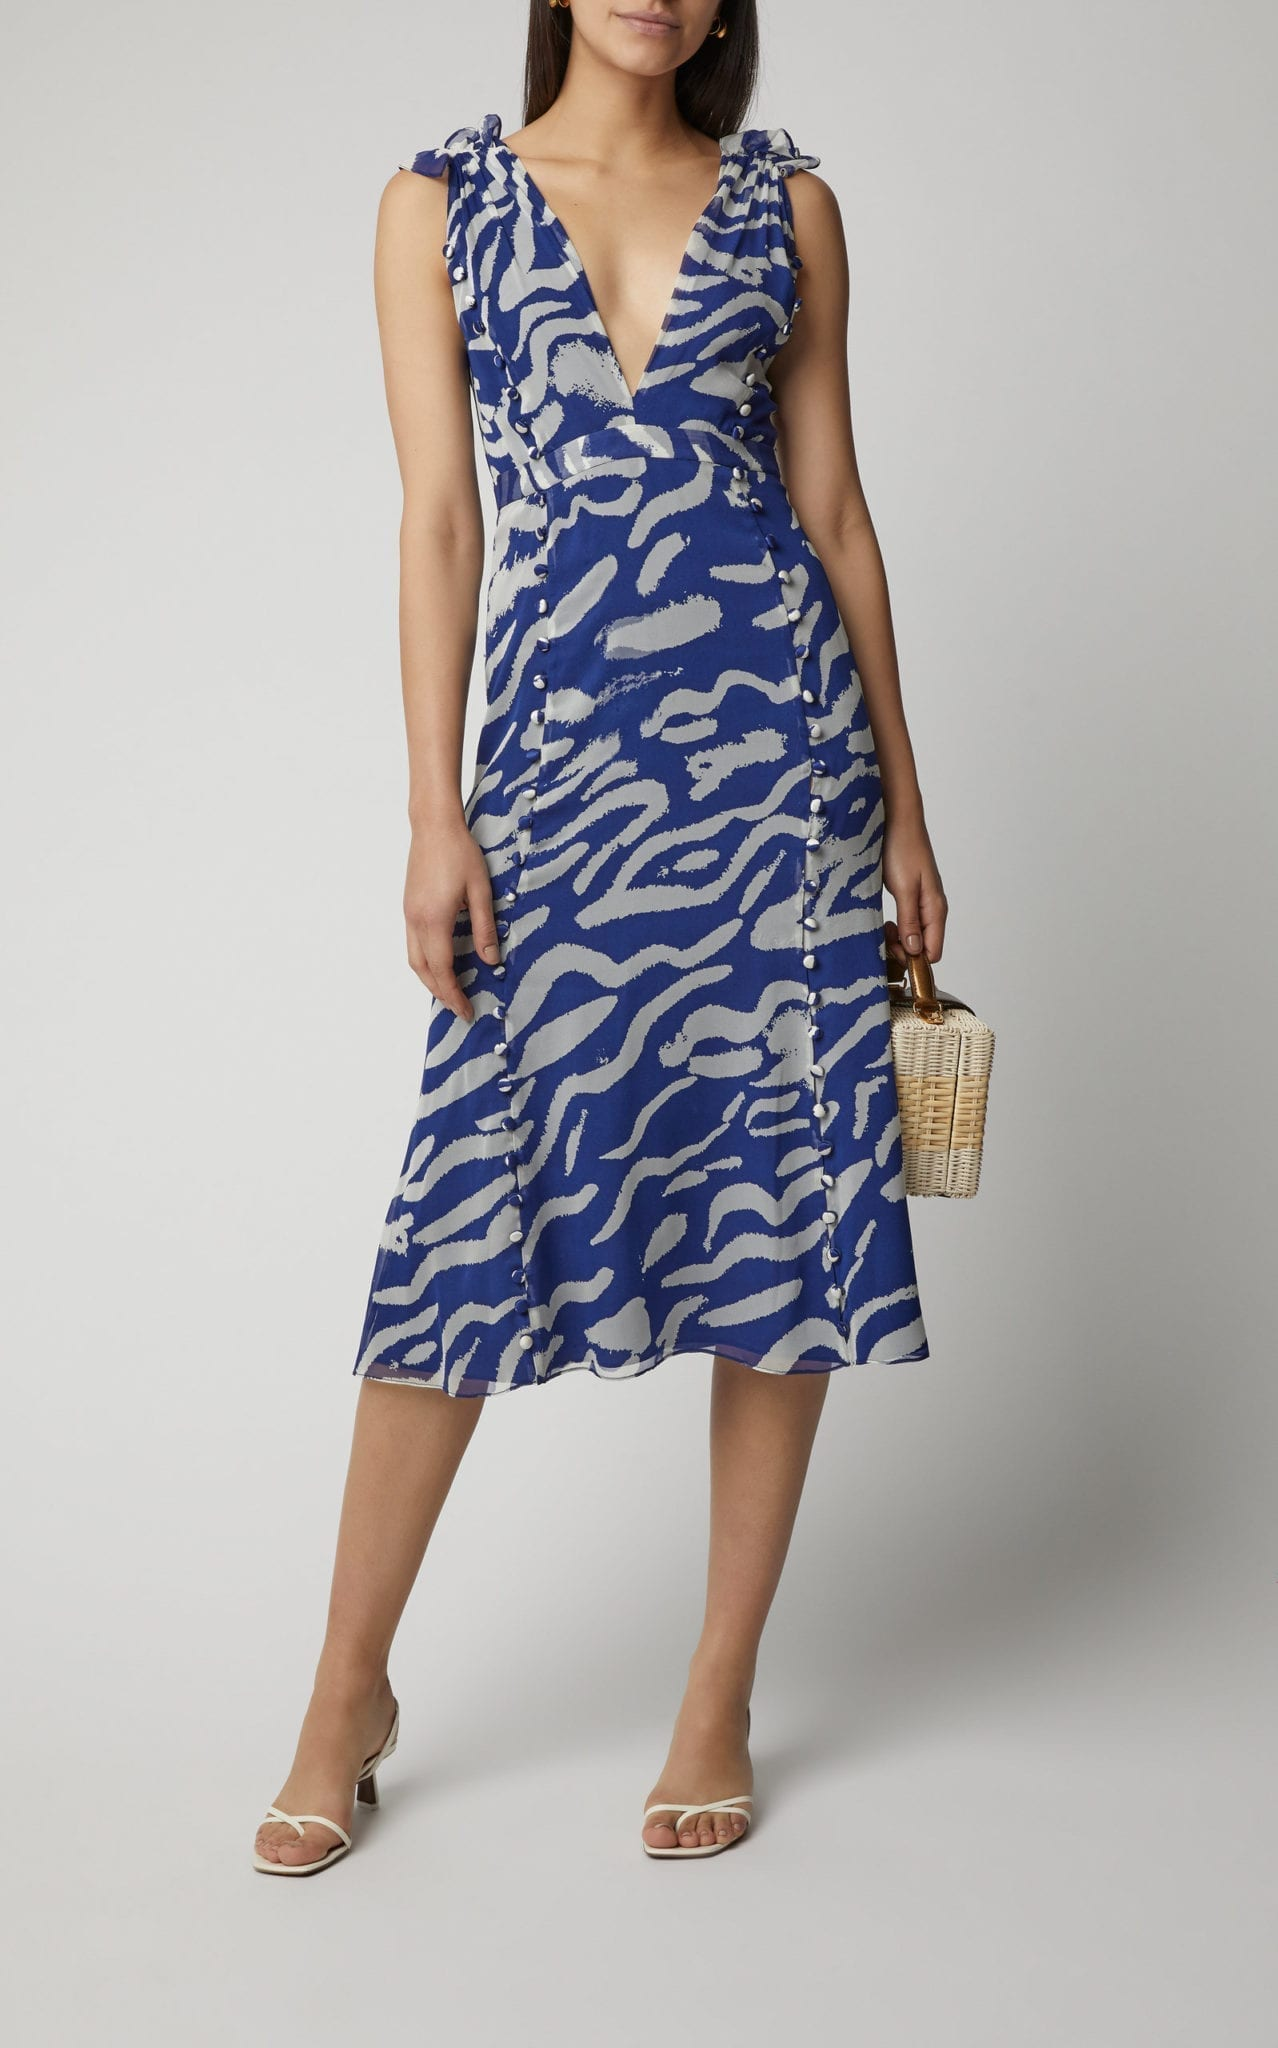 PRABAL GURUNG Printed Button-Detailed Silk Dress